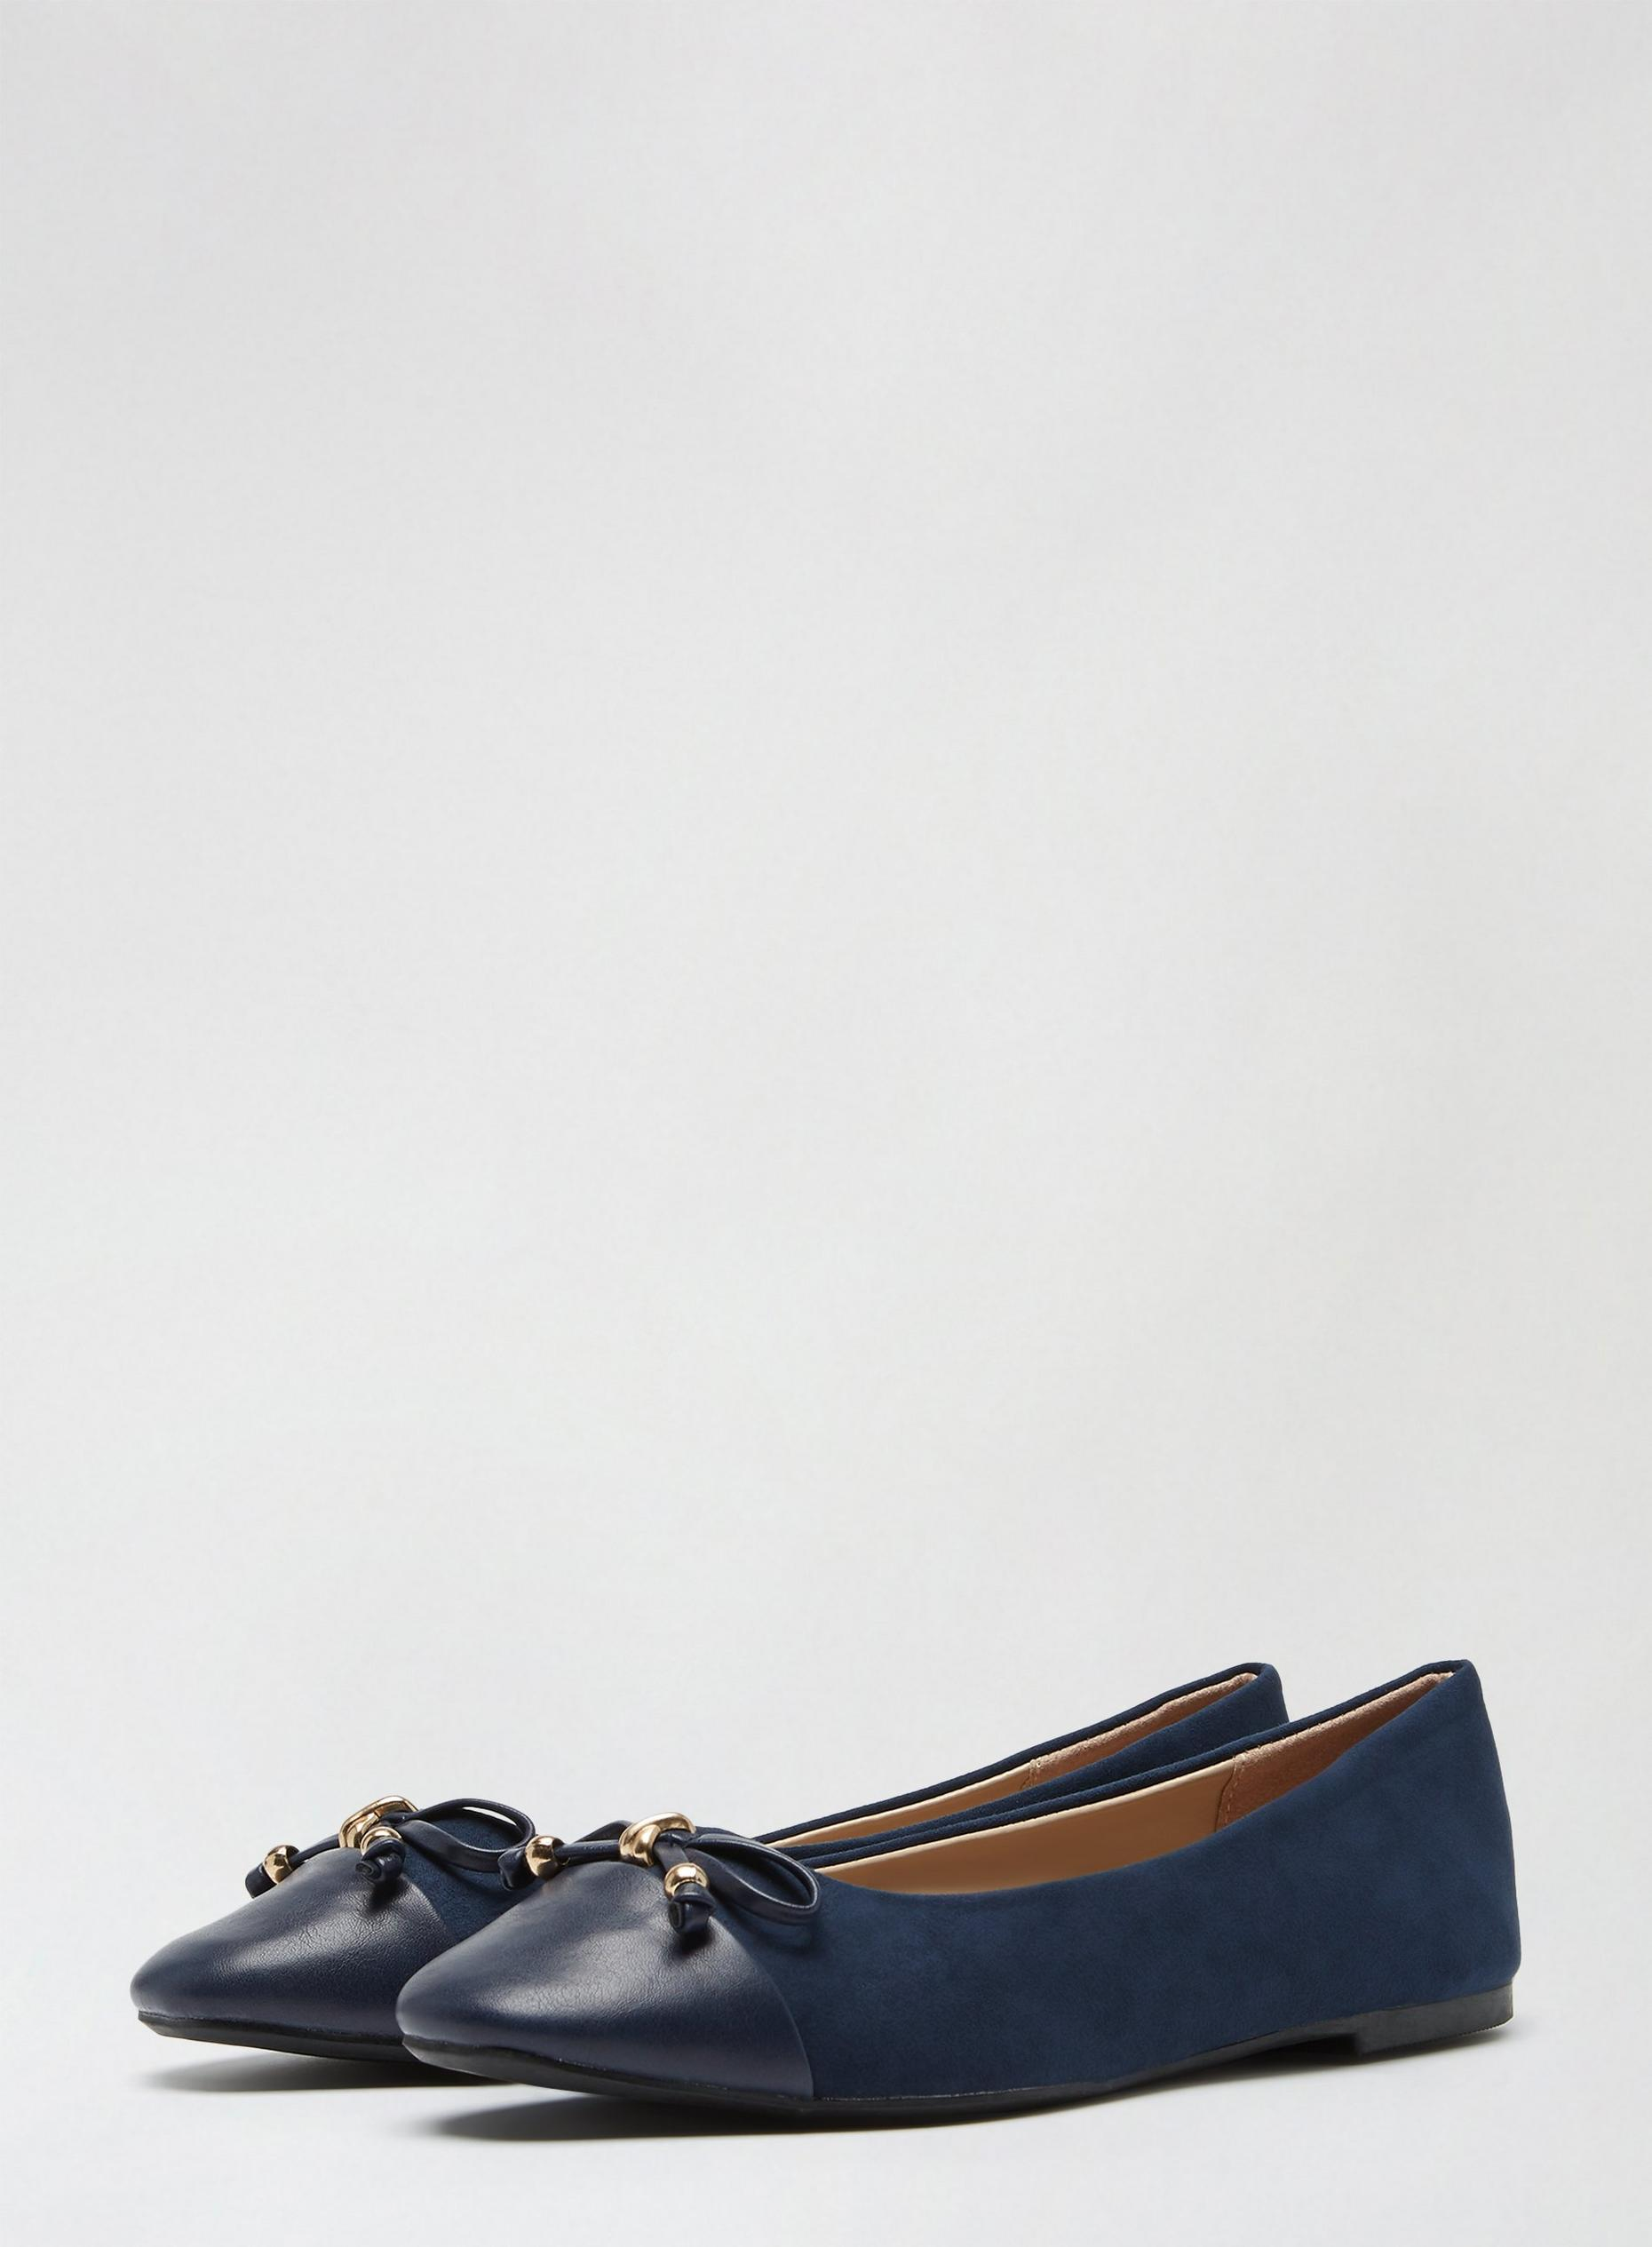 Navy Peanut Ballerina Pumps